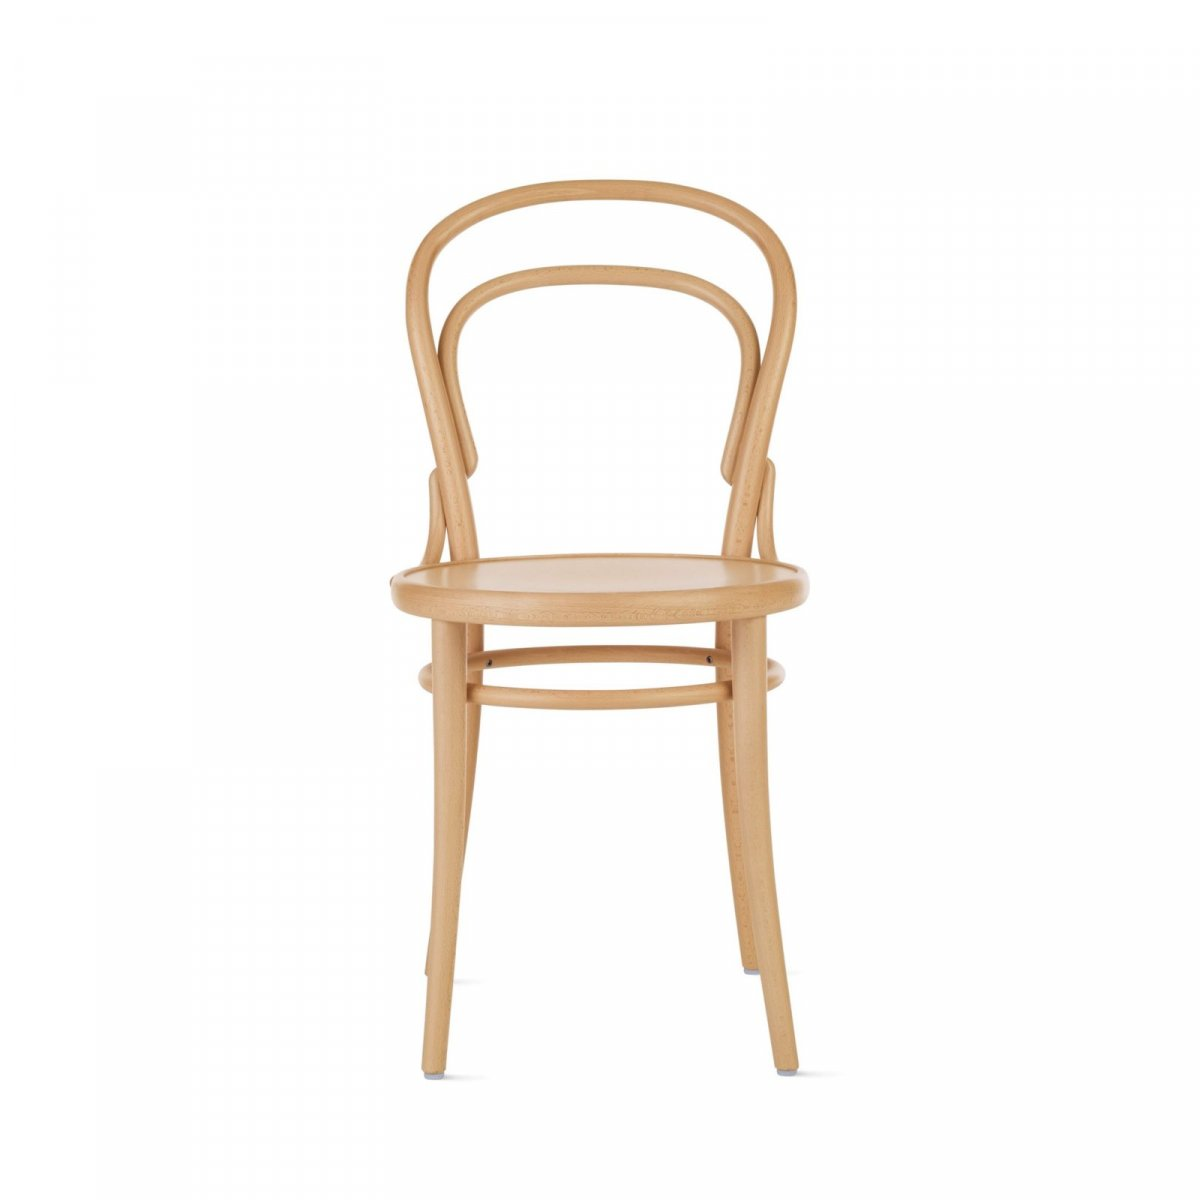 Era (214) chair, natural, front view.